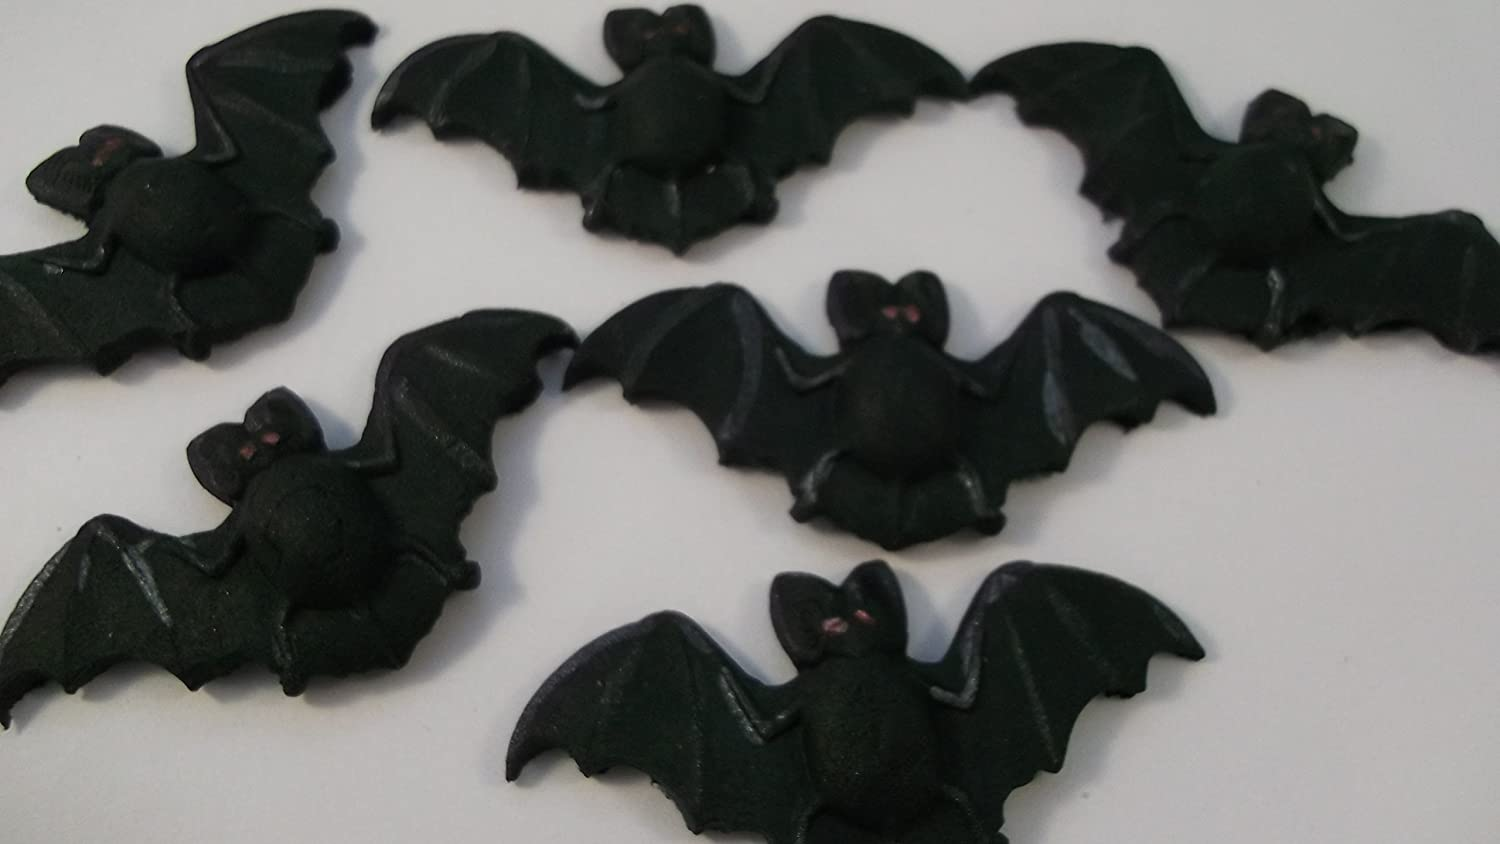 6 Large Edible Bats Halloween Trick or Treat Cupcake Cake Decorations Simply Toppers